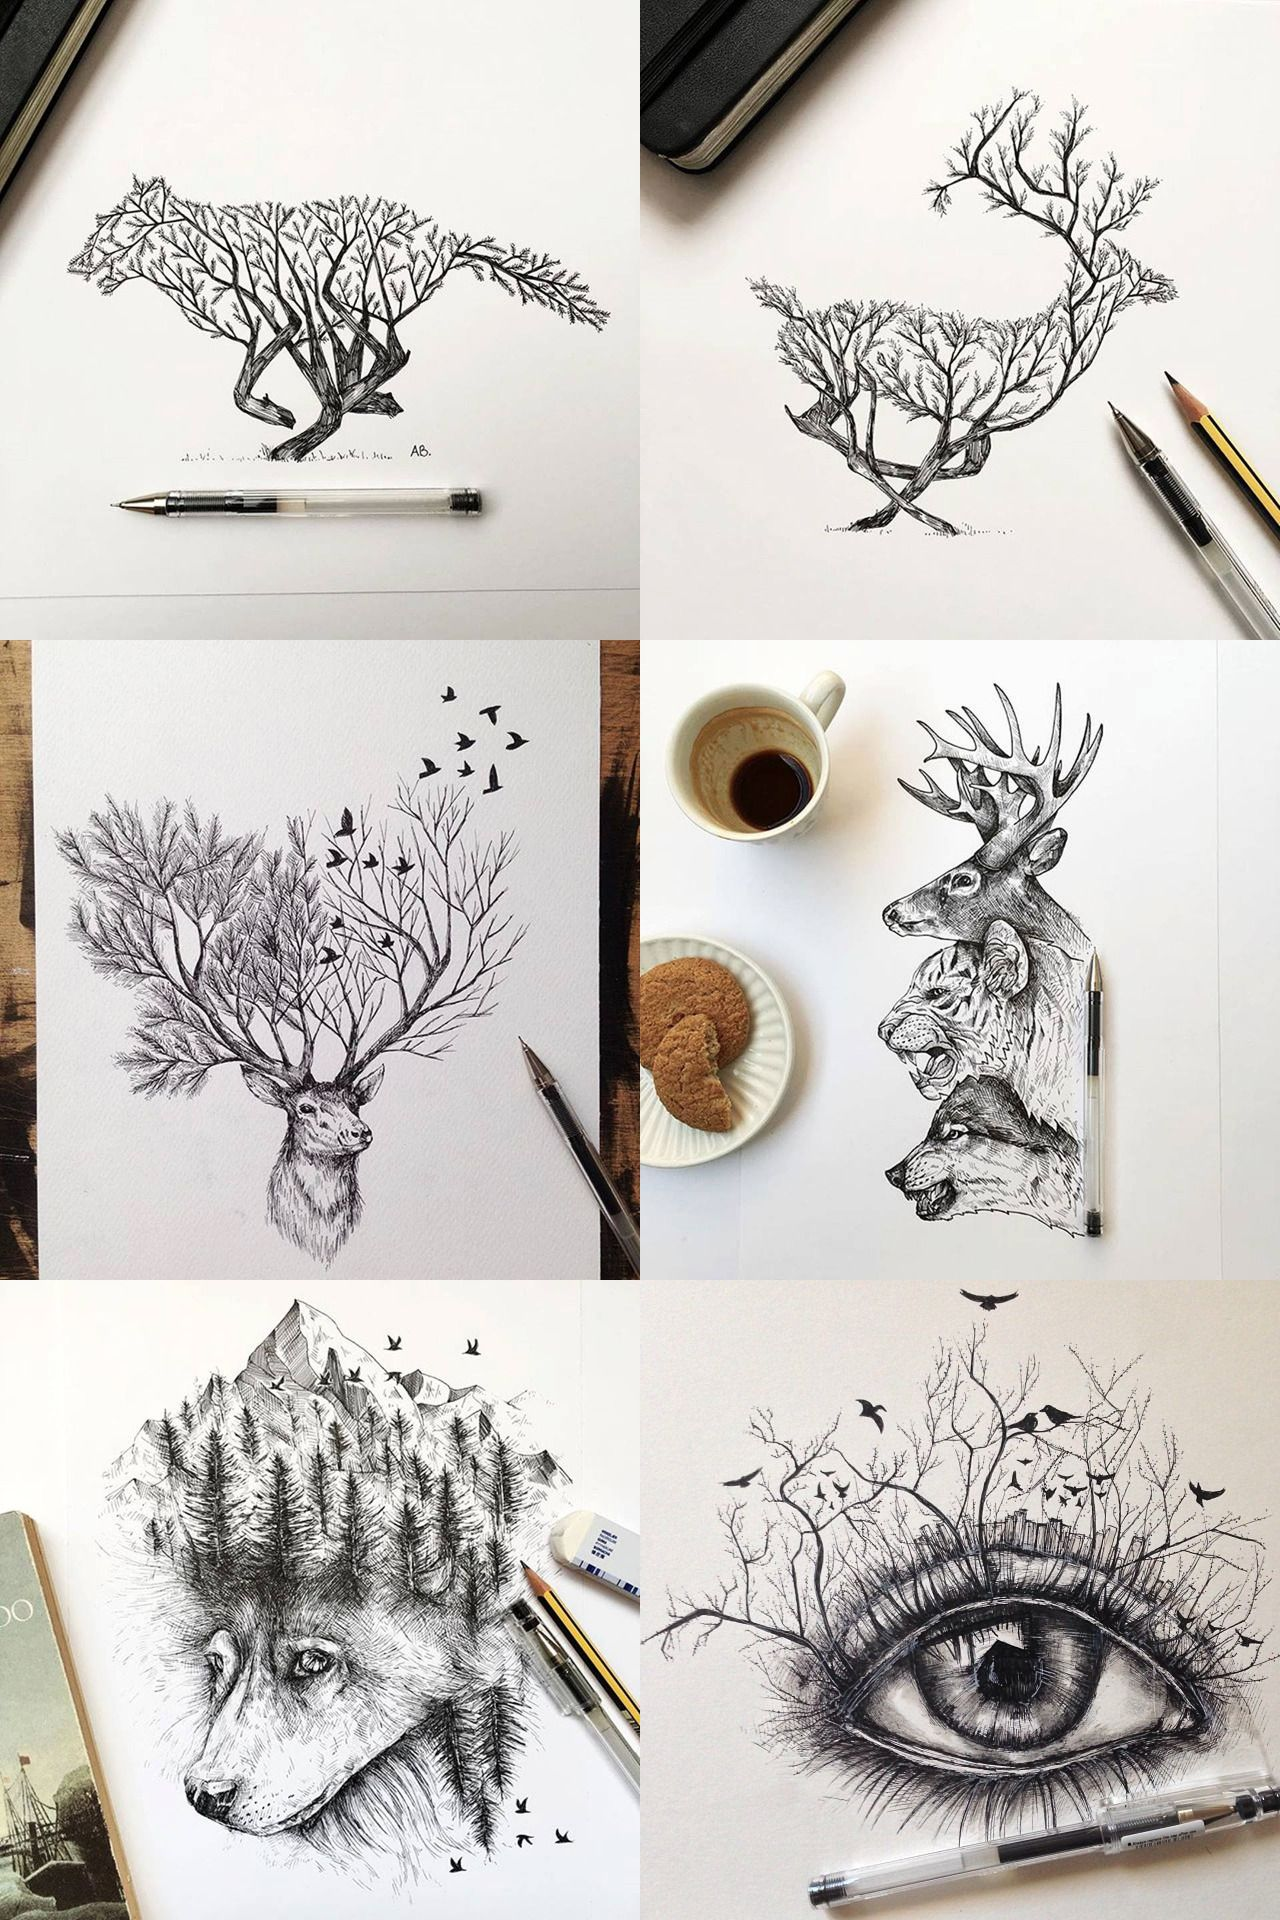 Beautiful drawings by alfred basha they look a little similar to my illustrations actually very similar concept too mixing the two forms of nature